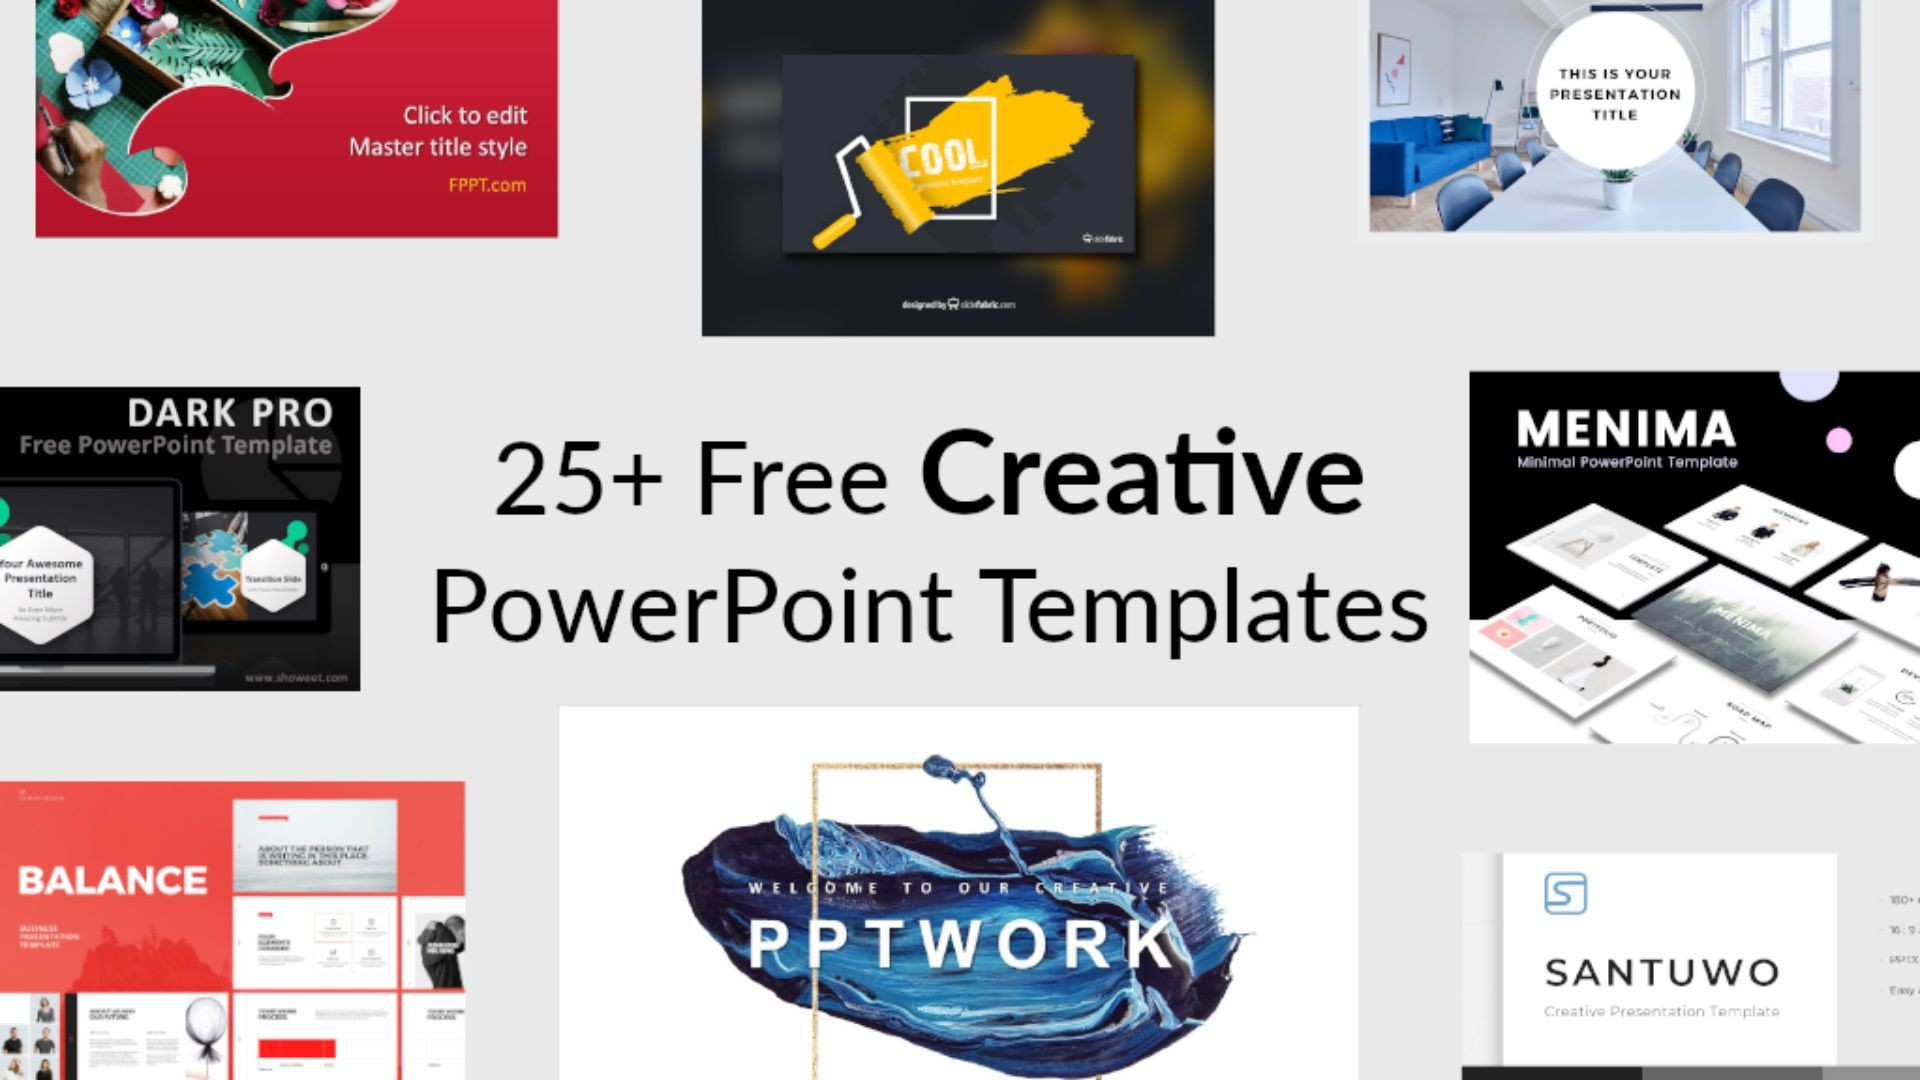 001 Shocking Free Powerpoint Presentation Template Design  Templates 22 Slide For The Perfect Busines Strategy Download Engineering1920